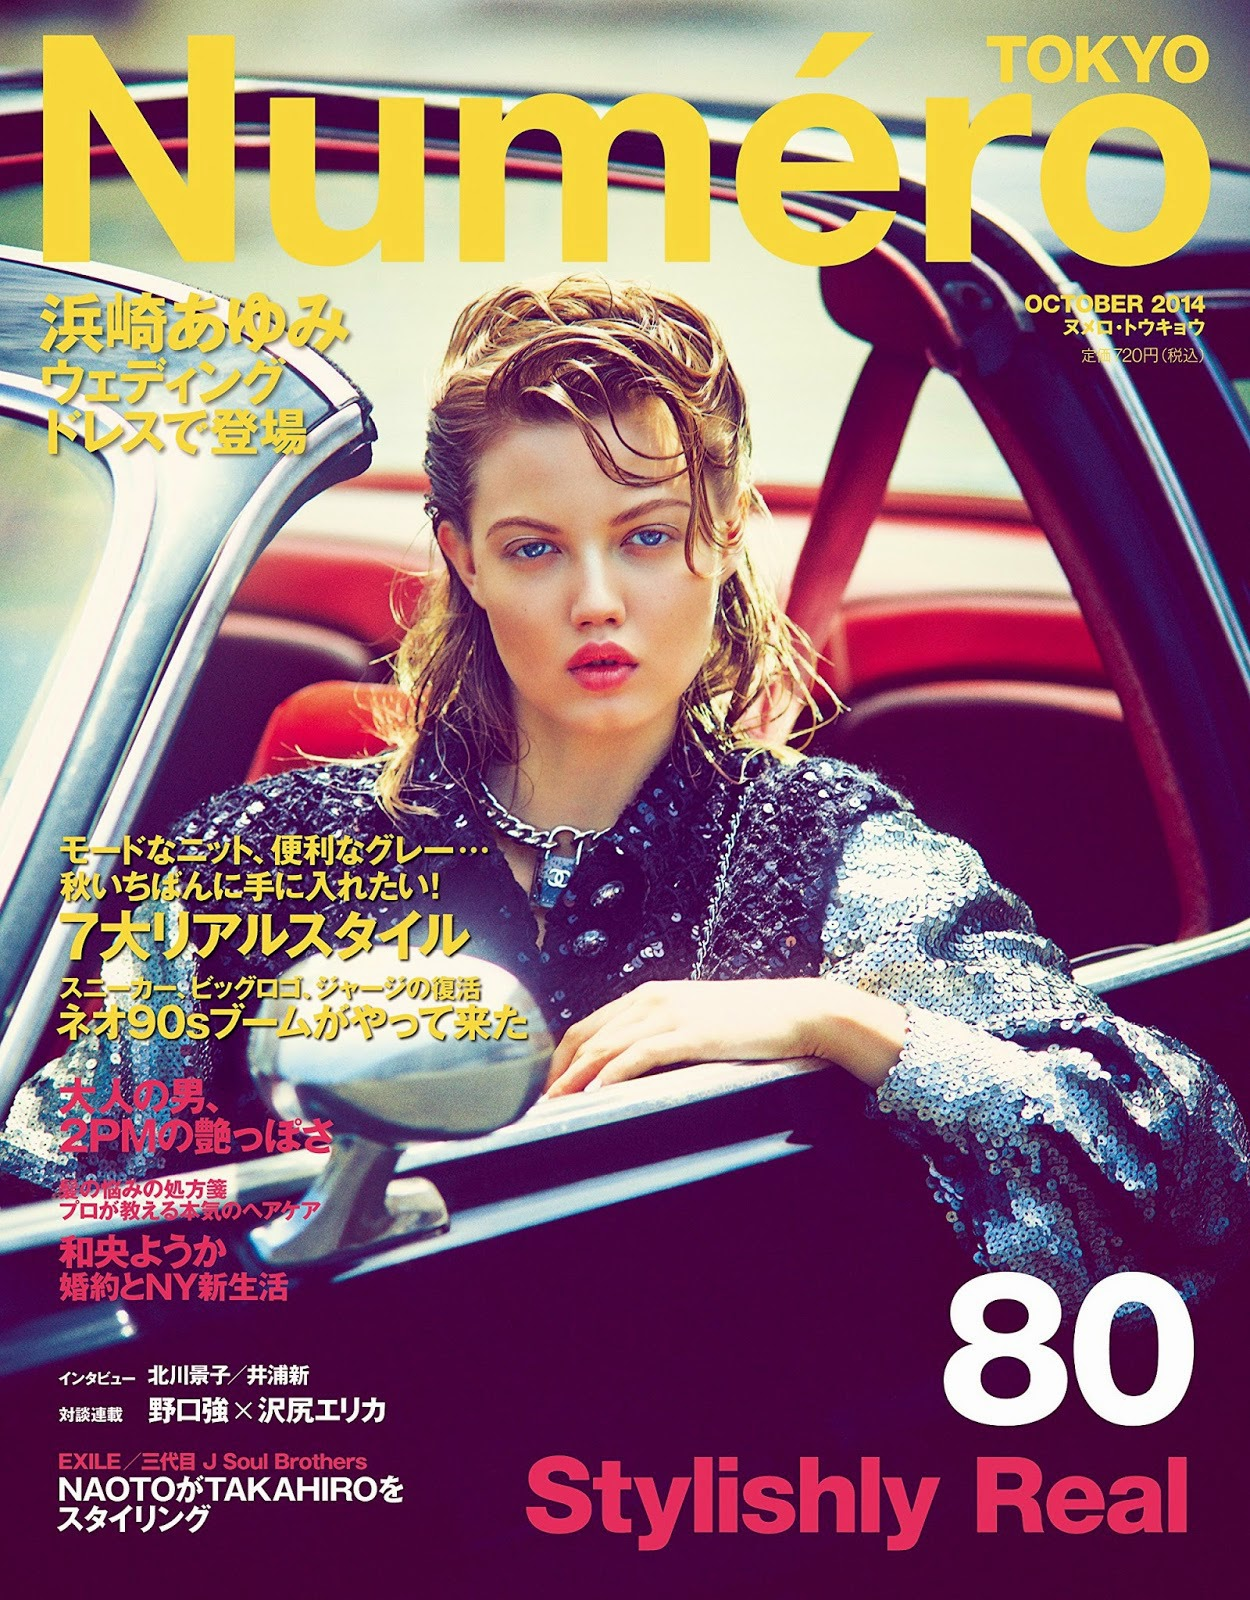 Lindsey Wixon covers Numero Tokyo October 2014